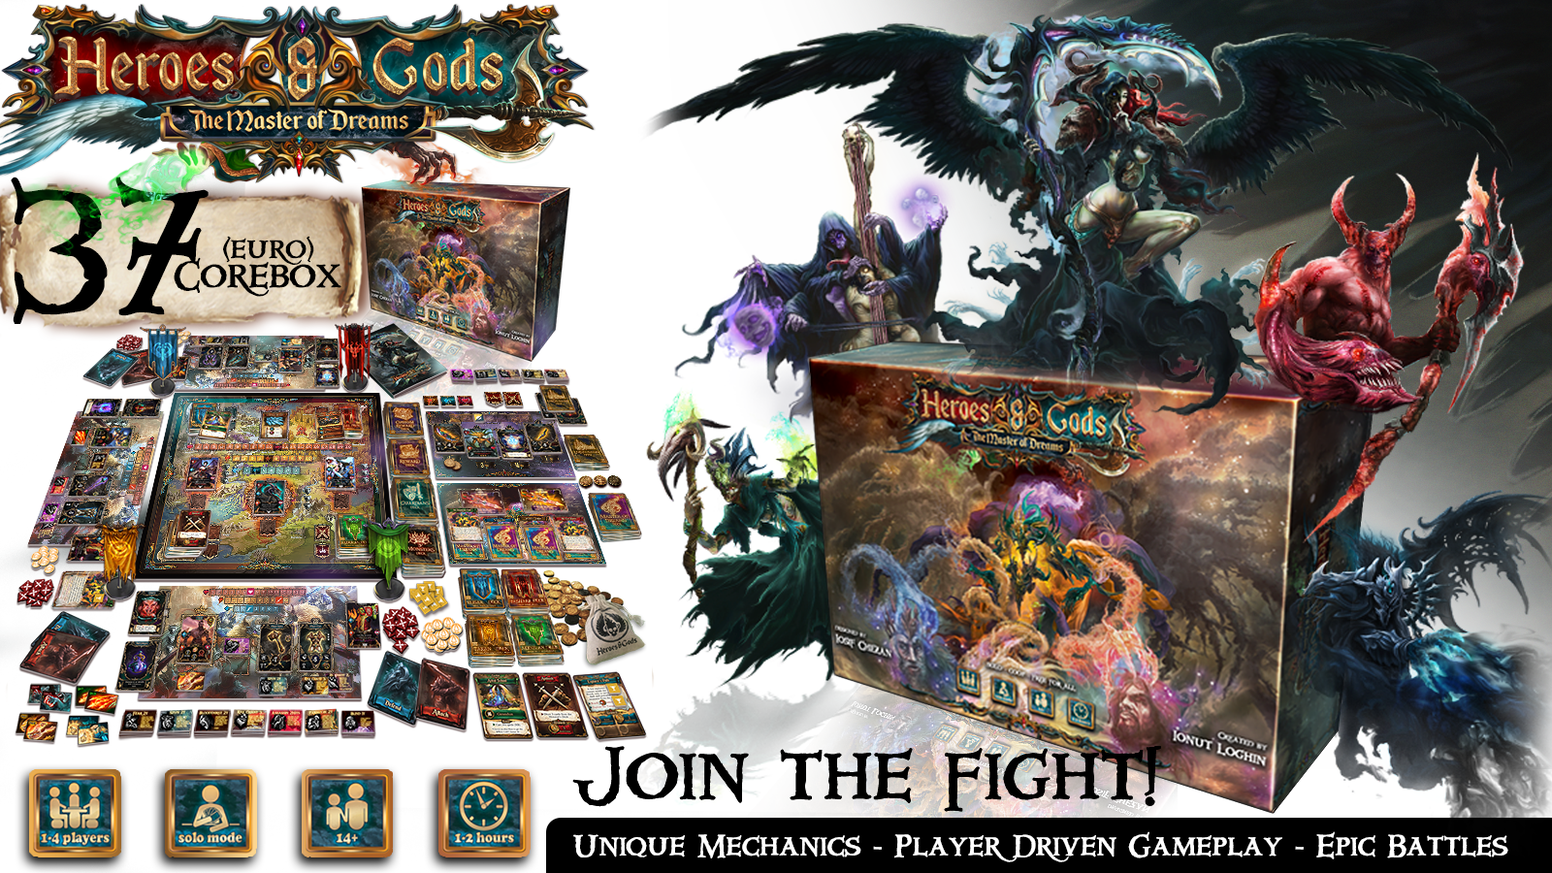 The epic fantasy player-driven board game where you control your own fate. Play solo, co-op or free for all. Join the fight!